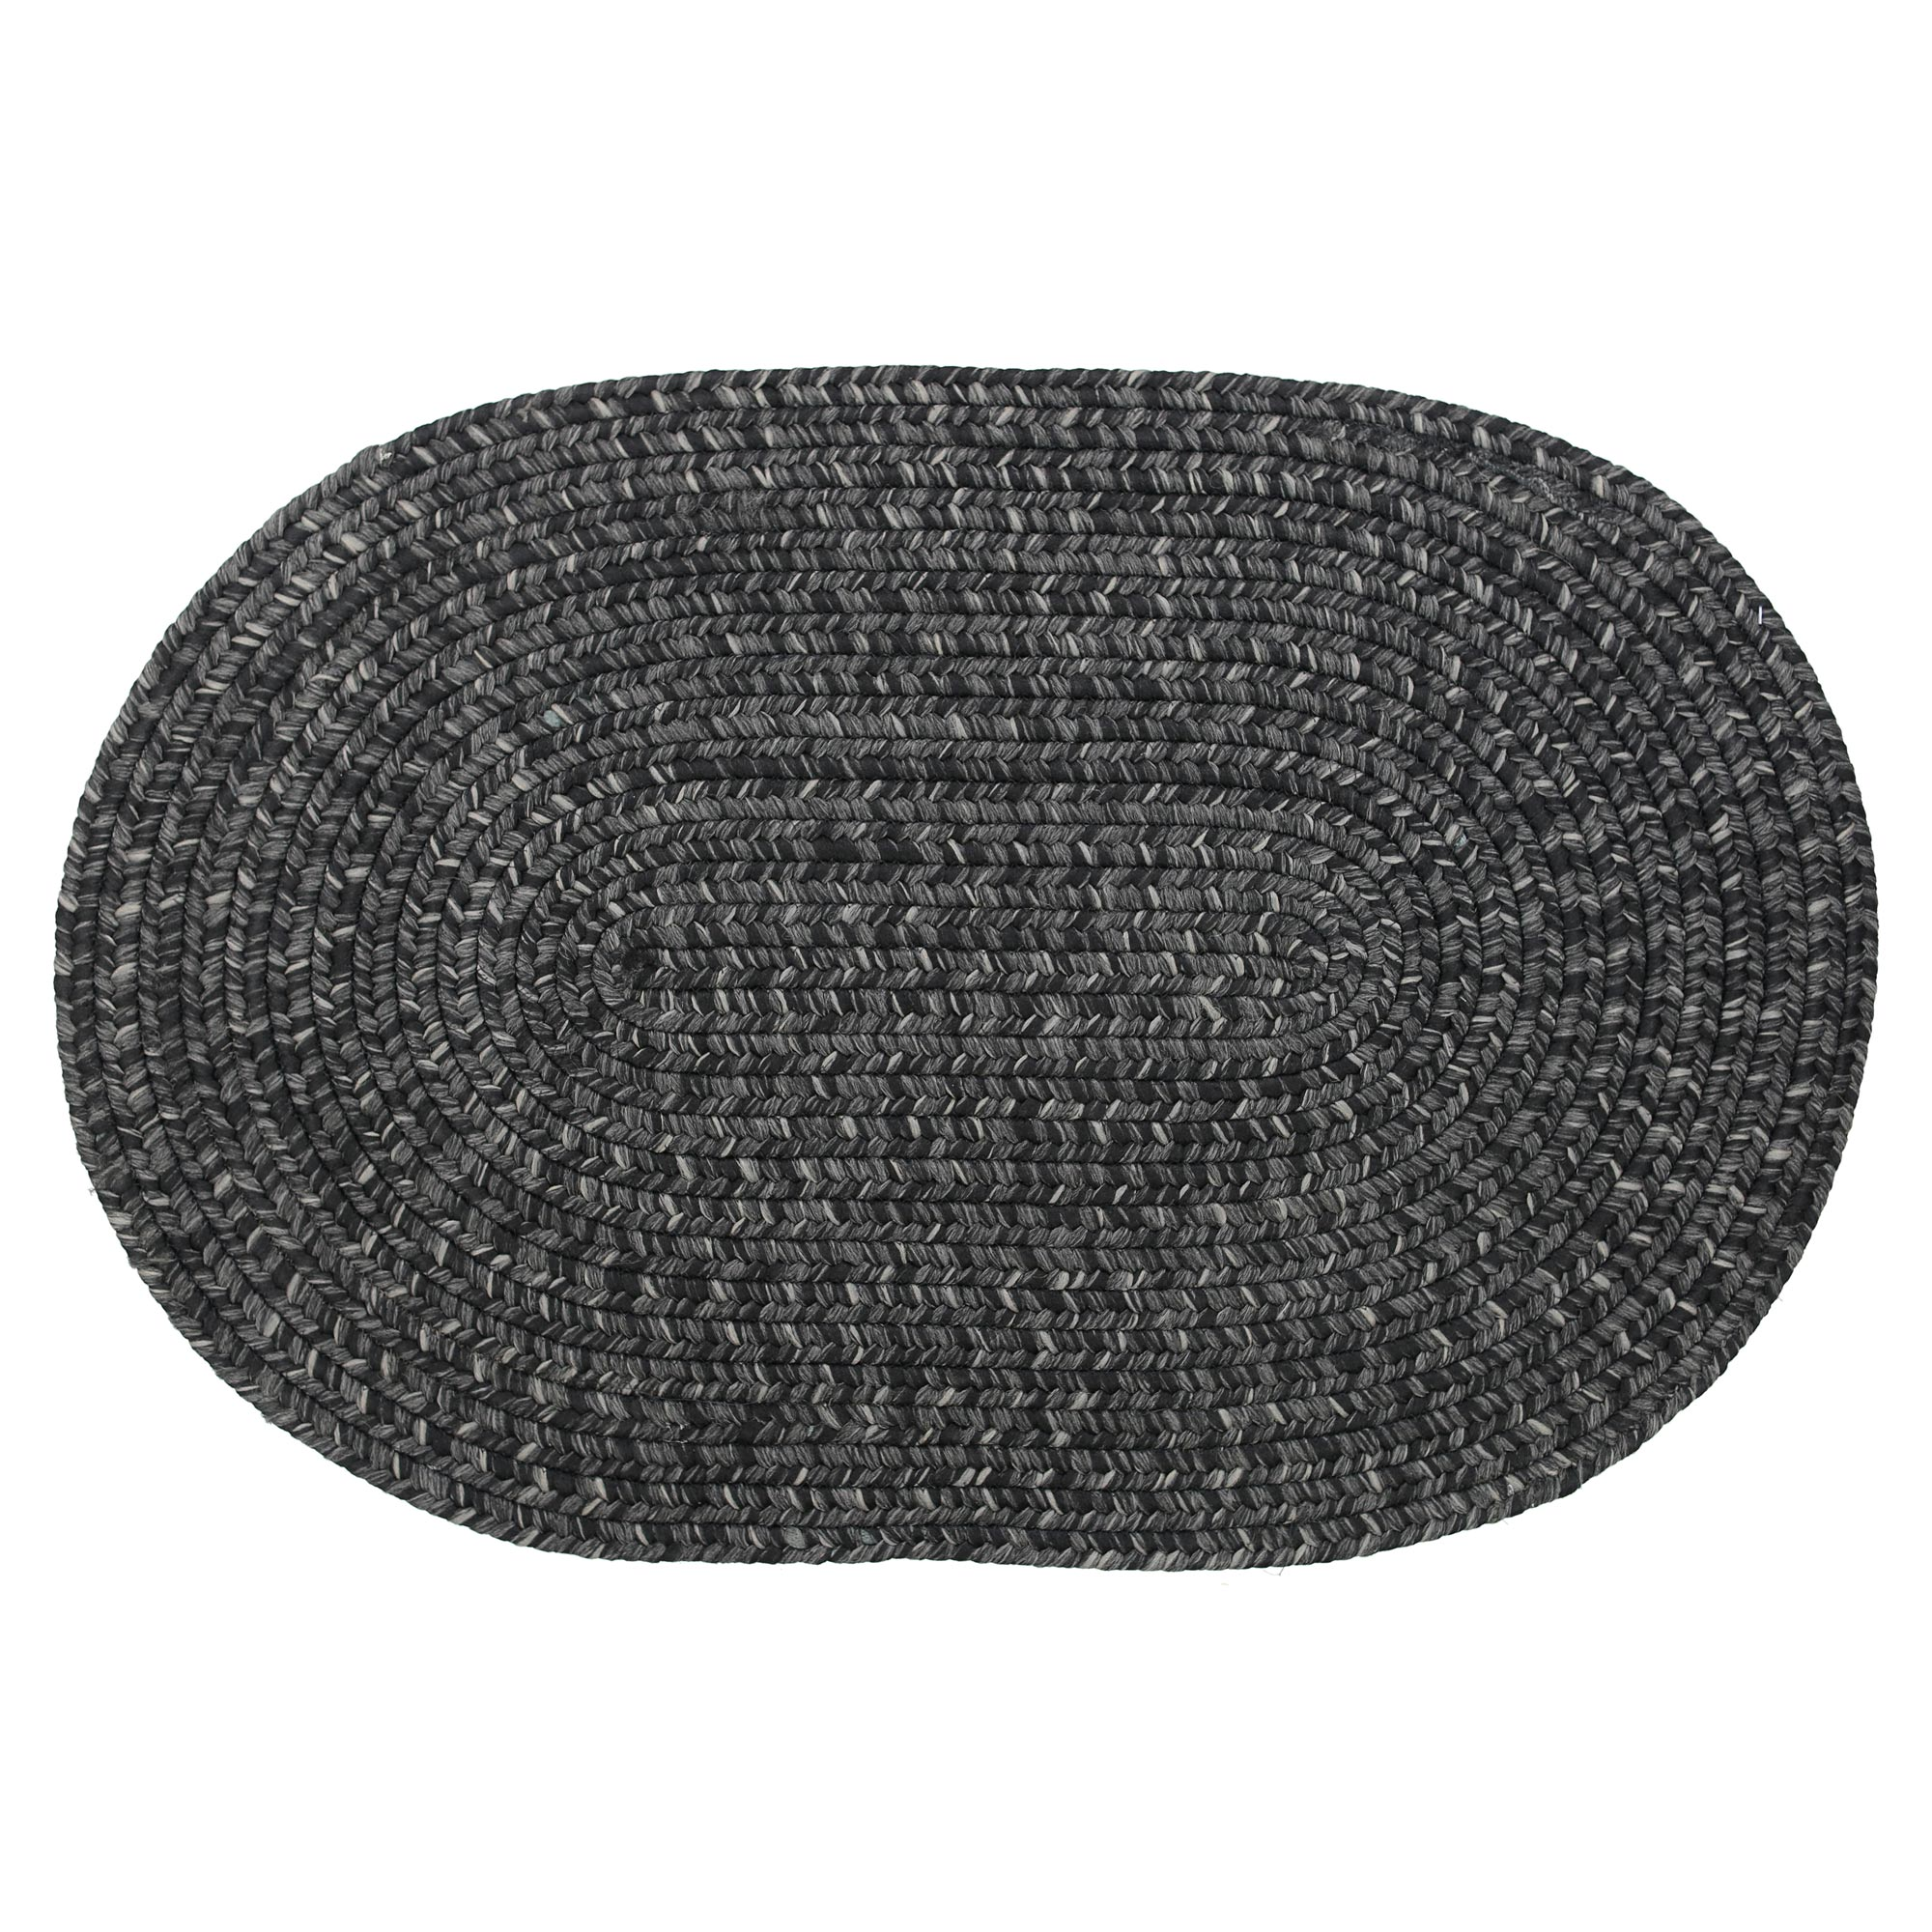 Solid Braided Area Rugs Indoor Outdoor Oval Rectangle | eBay - photo#11